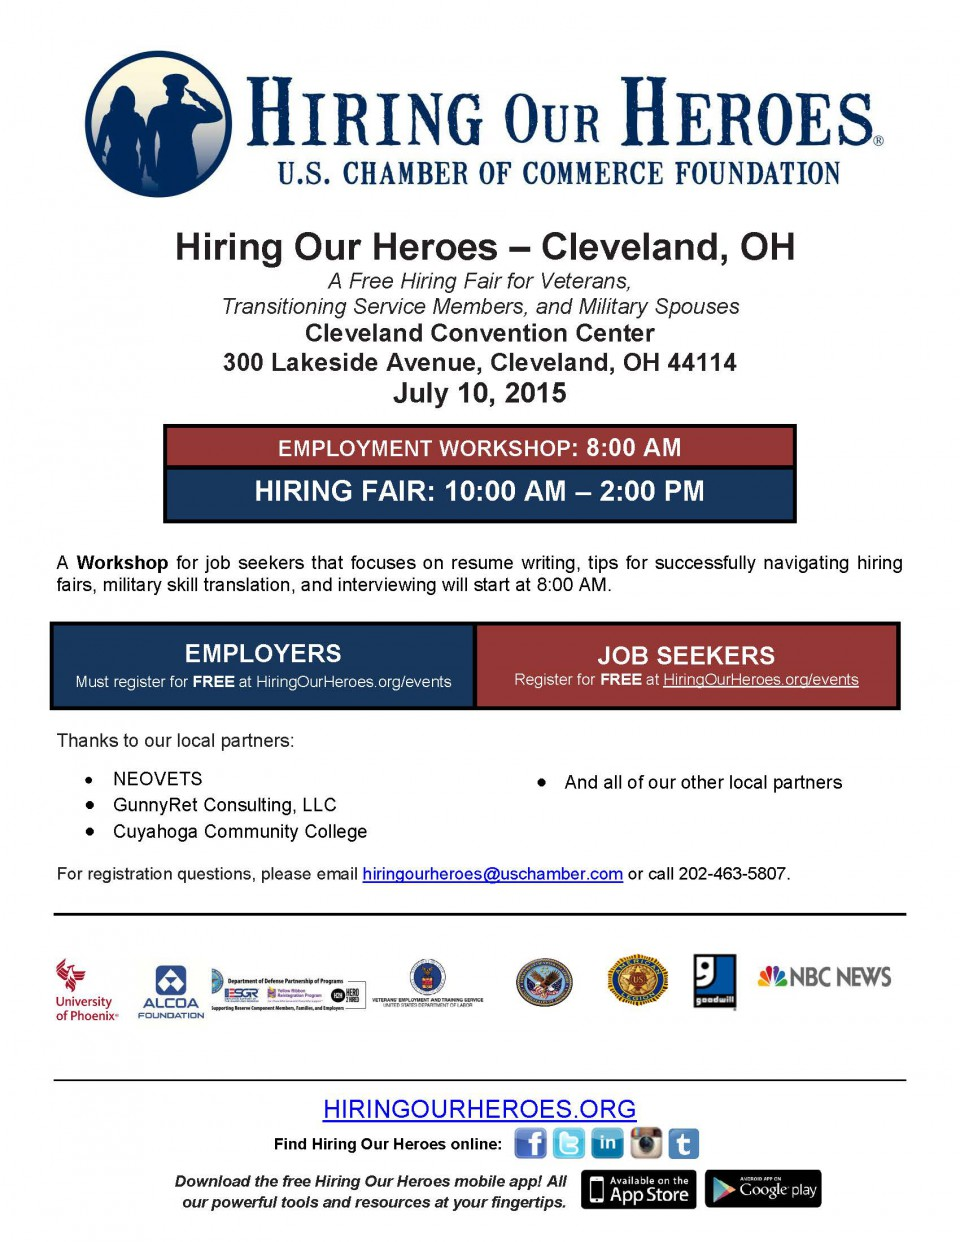 Hiring of Our Heroes Cleveland 2015